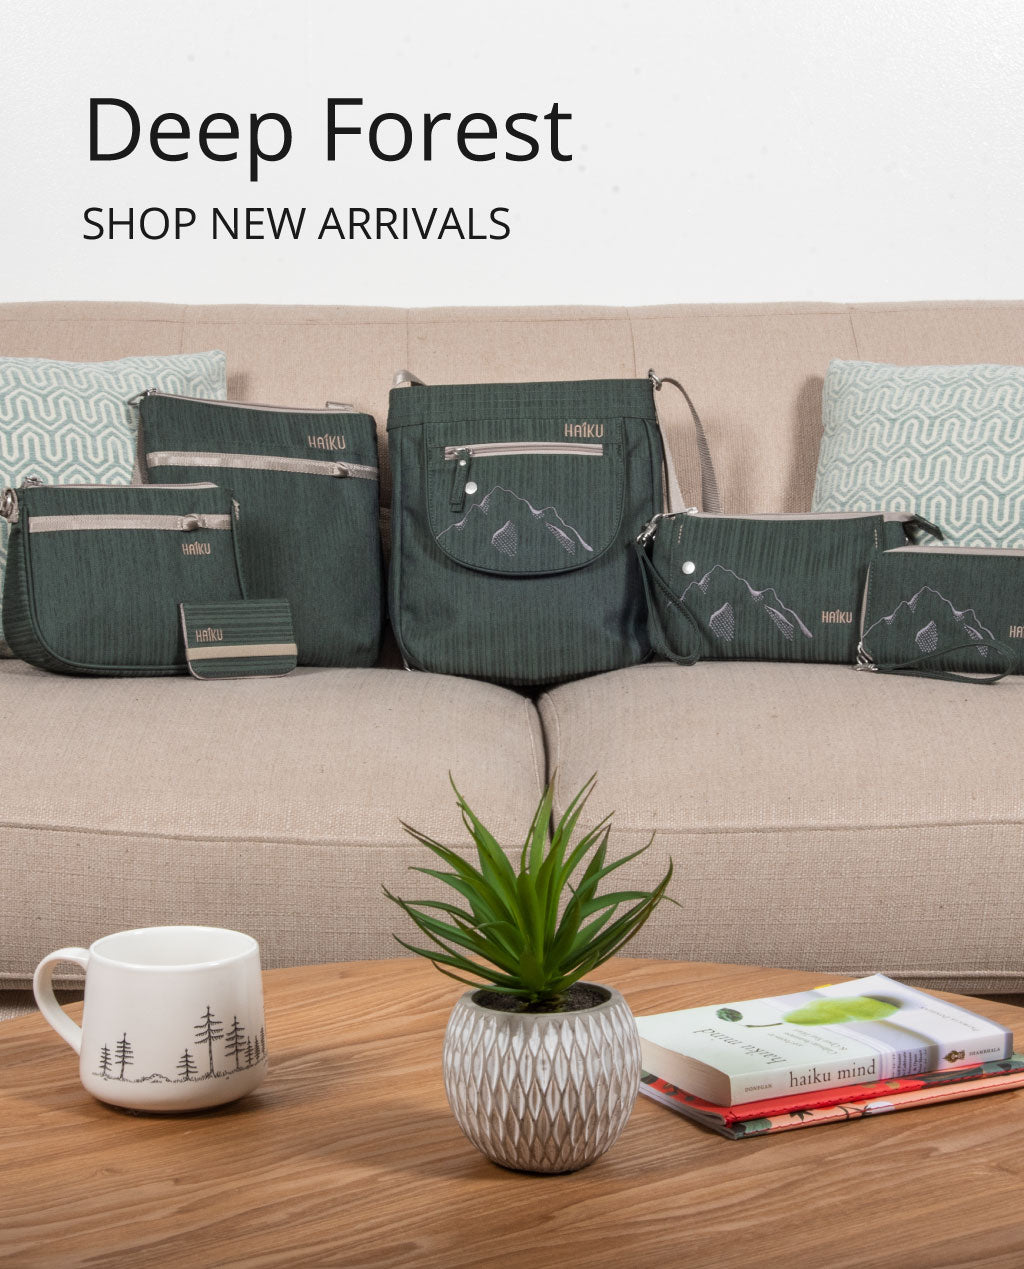 Deep Forest new arrivals